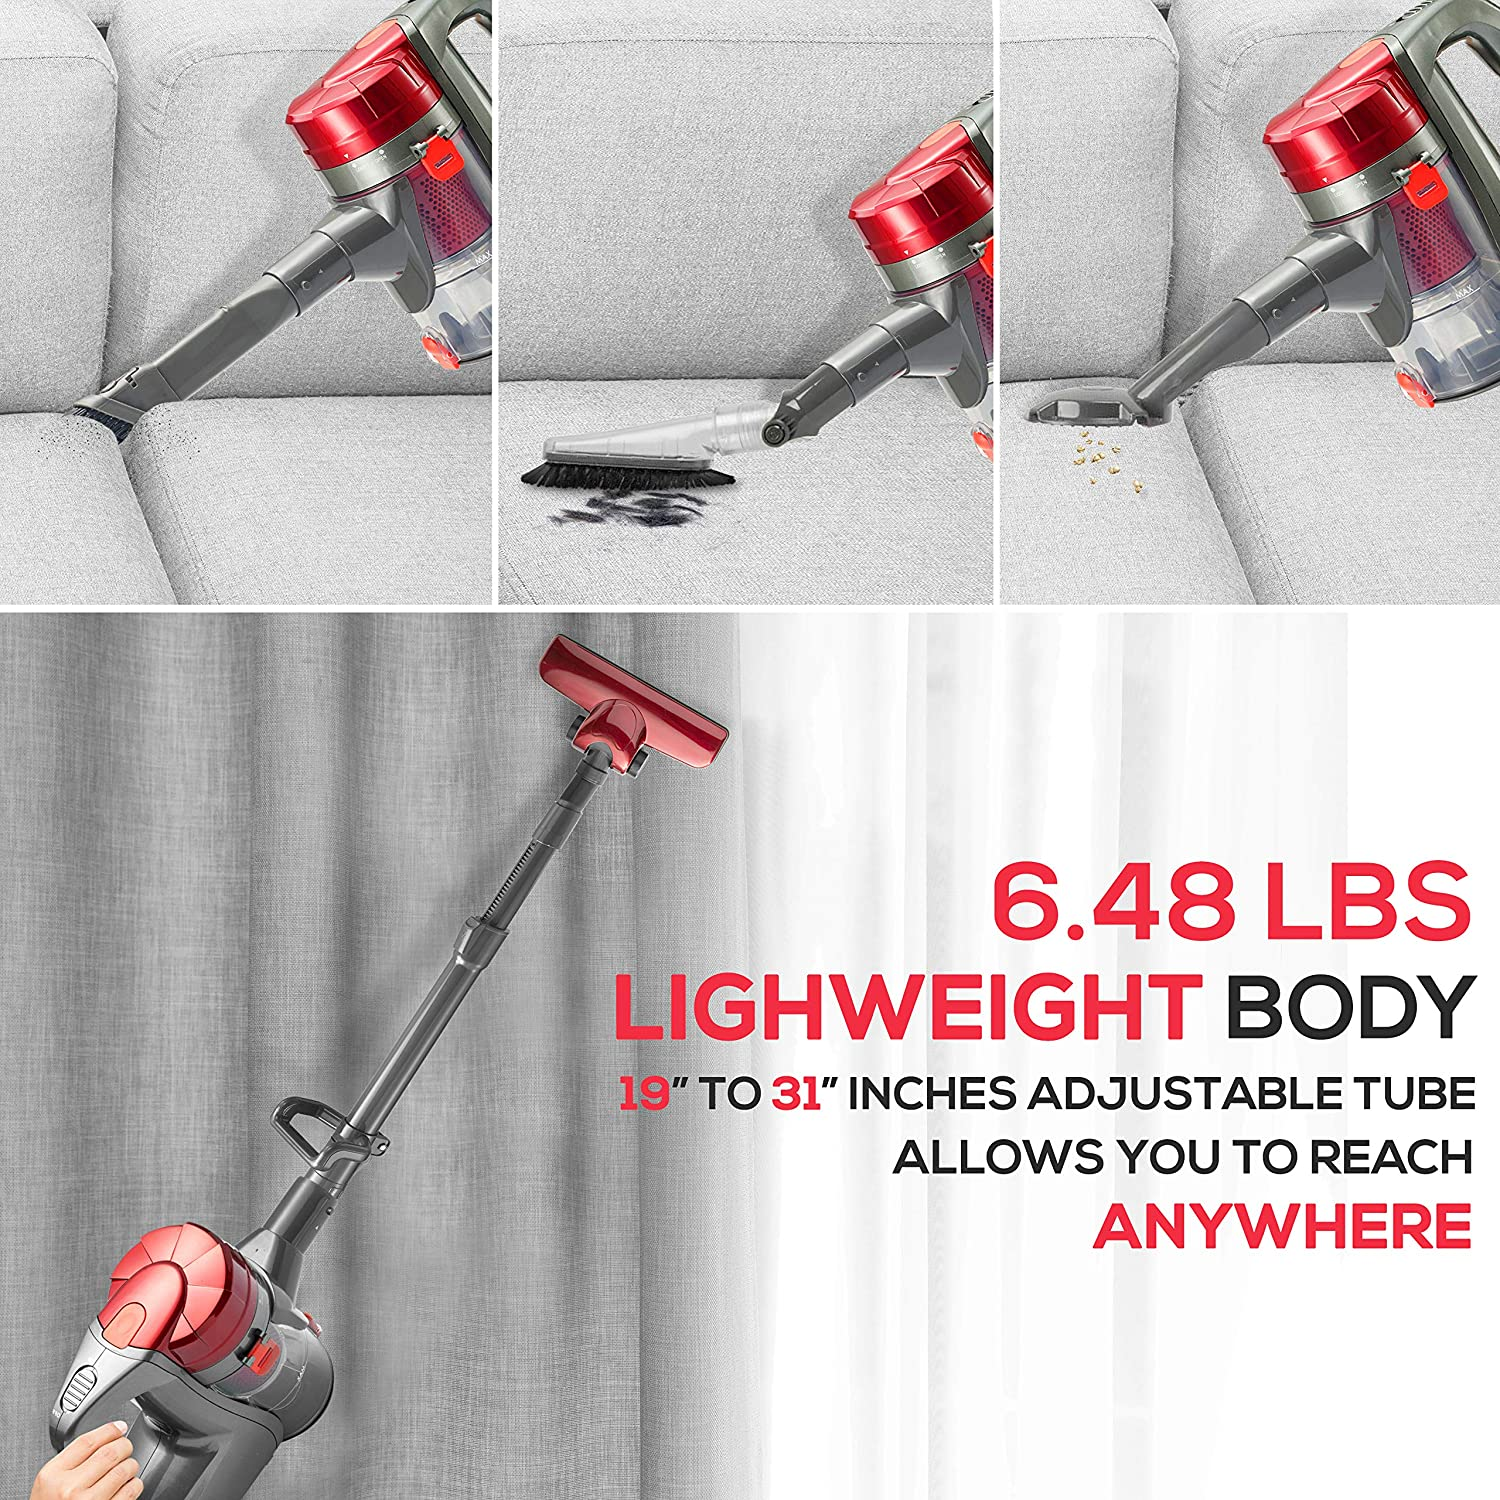 Corded Handheld Stick Vacuum Cleaner - 15kPa High Powered Suction Lightweight Bagless Hand Vacuum Cleaner w/ HEPA Filter, Dust Bin Canister, For Tile Wood Bare Hard Floor Carpet - Pure Clean PUCVC38